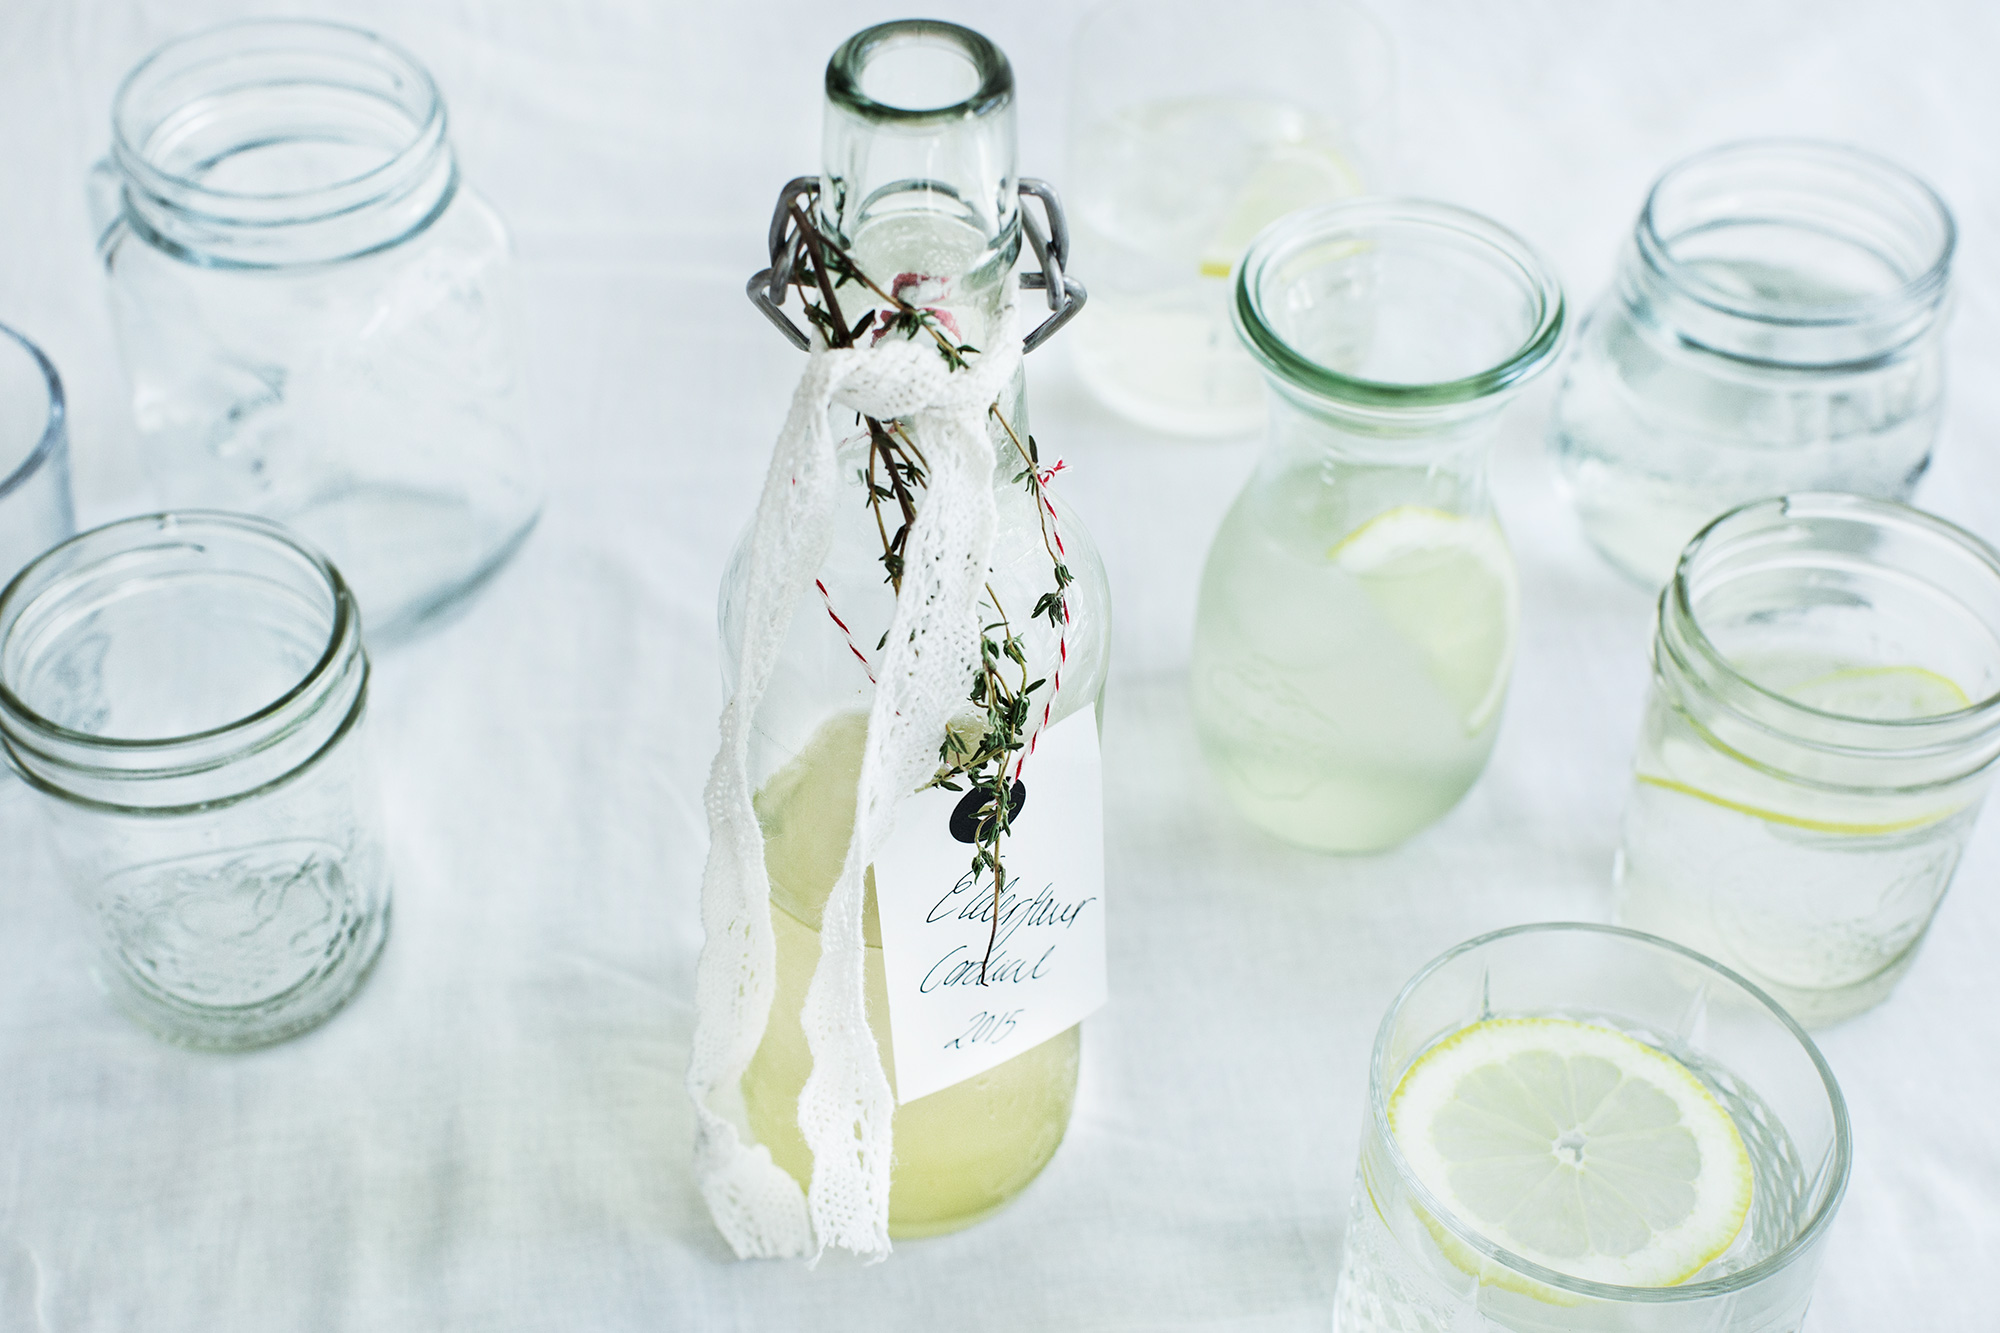 Recipe: Elderflower Cordial